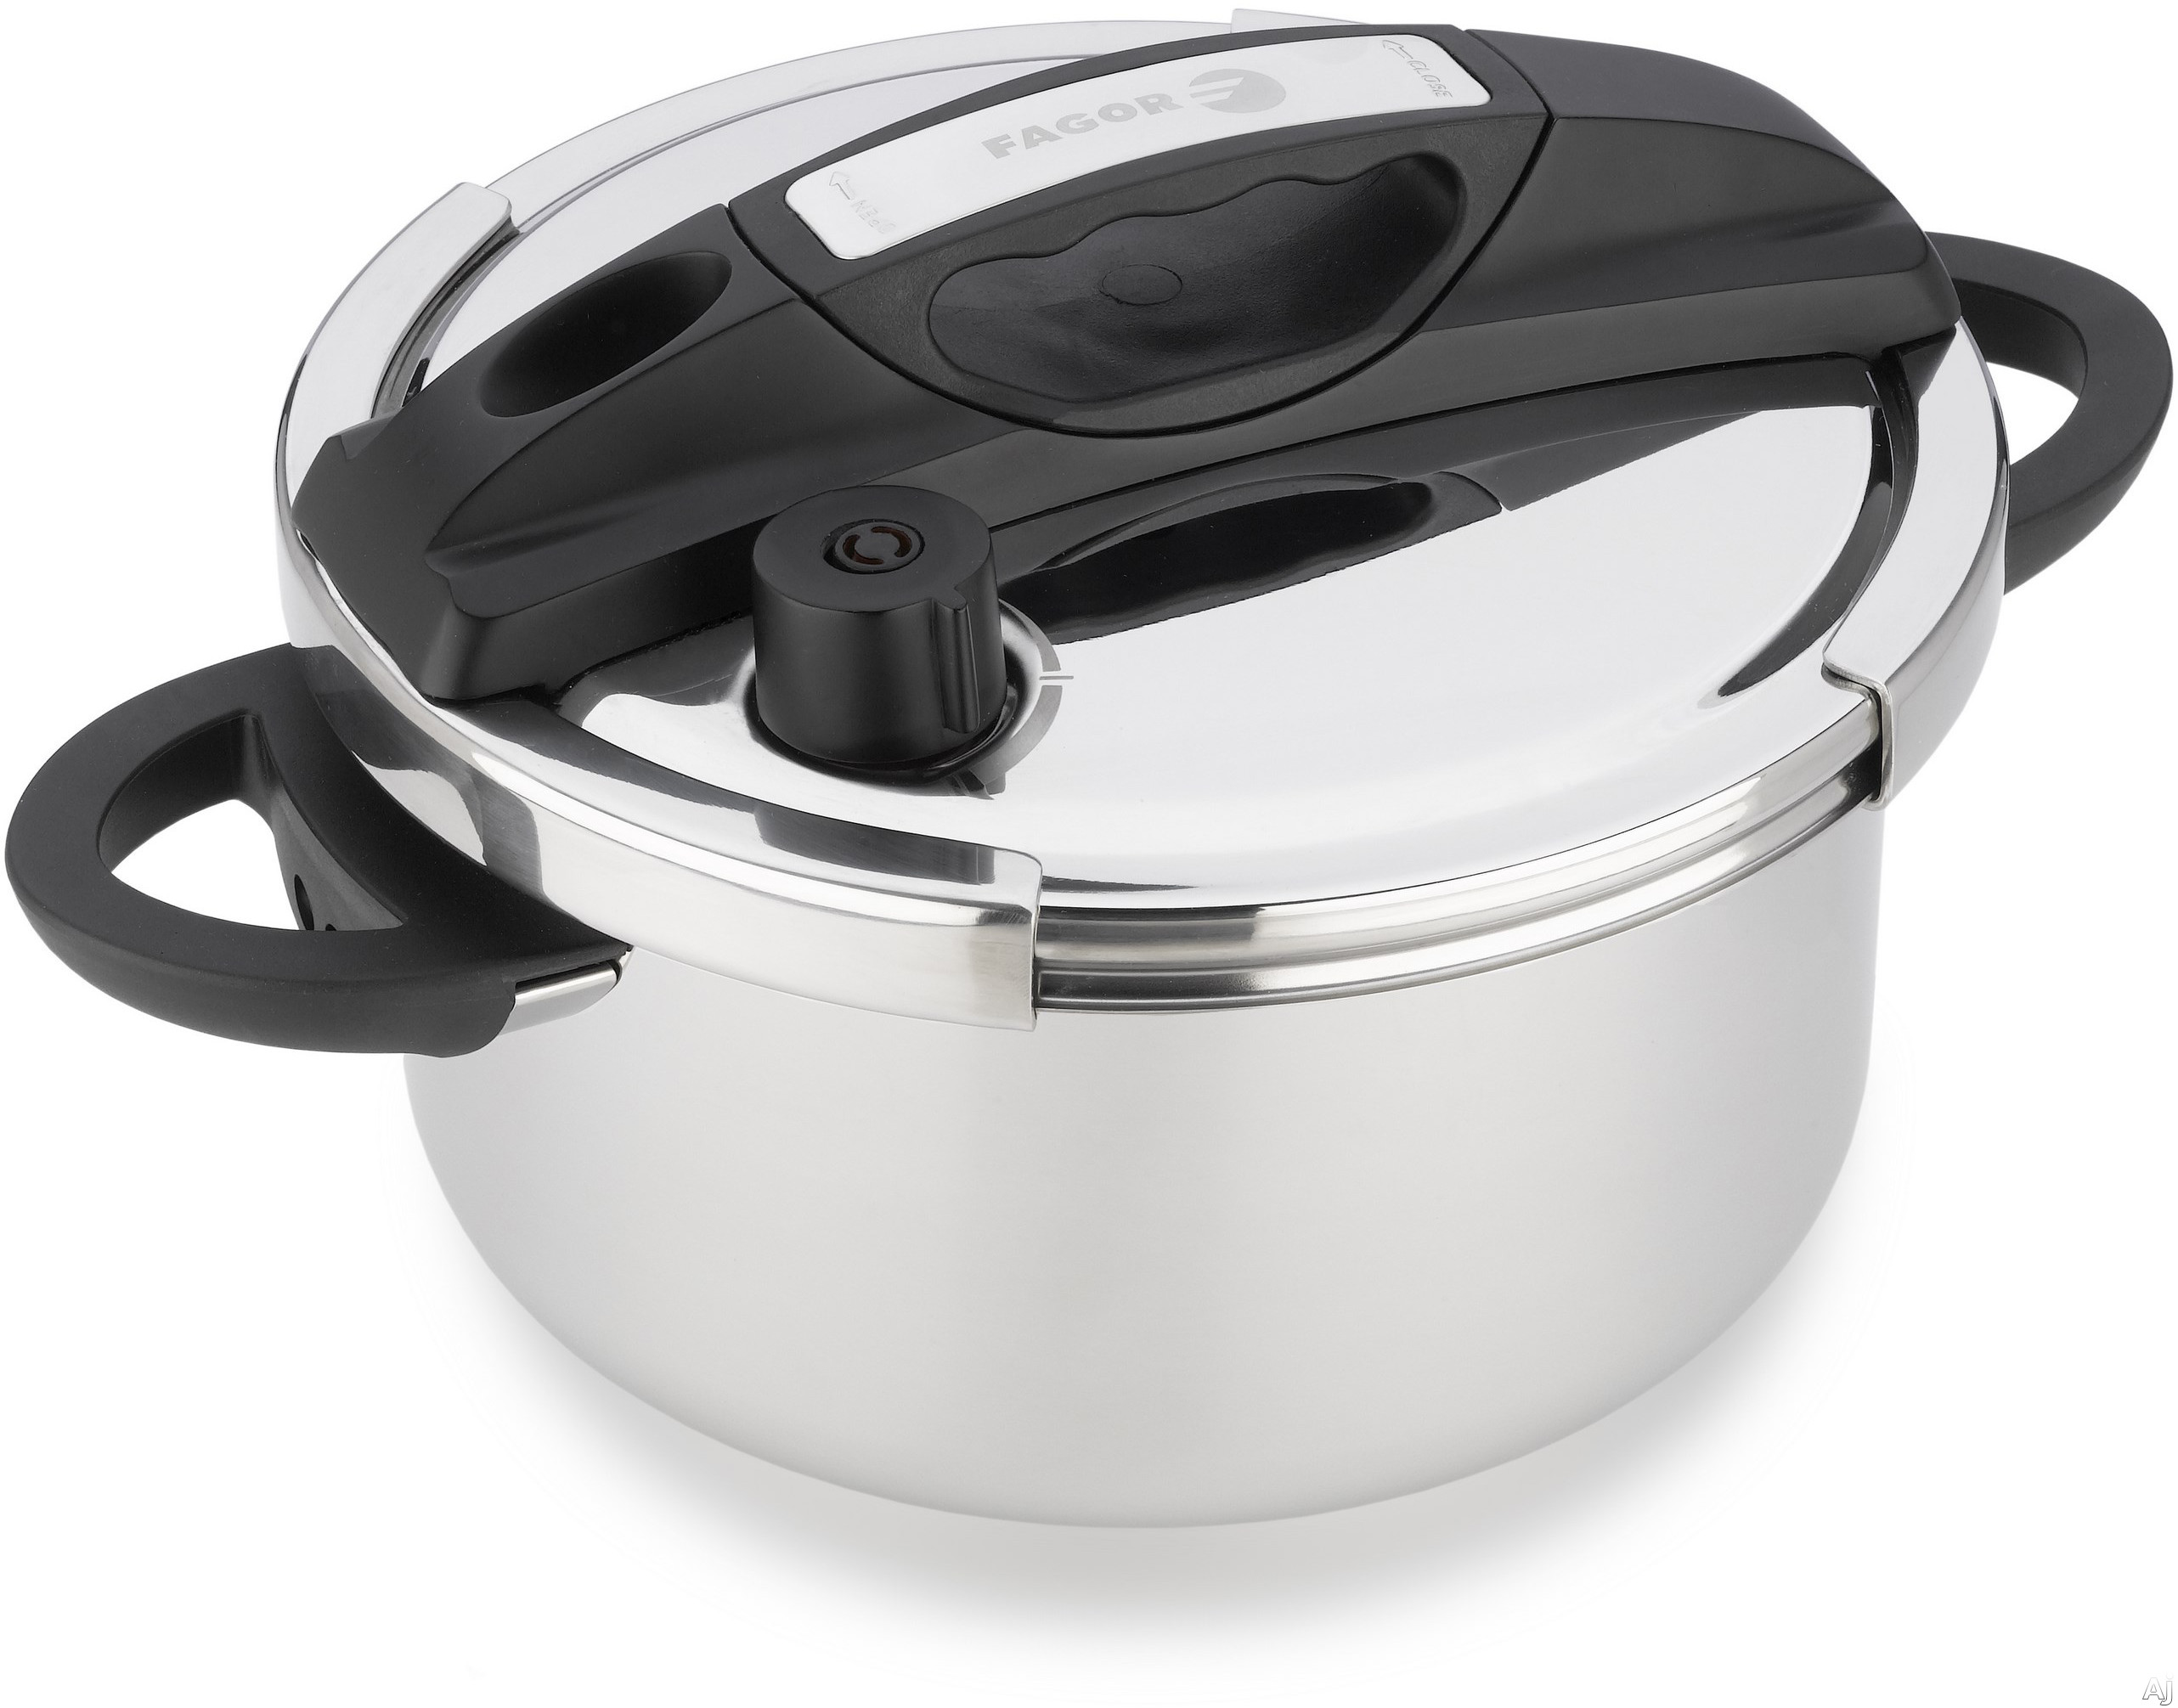 Image of Fagor 935010056 Helix 6-Quart Pressure Cooker with Fast Cooking, Easy-Lock Lid, Induction Suitable, Two Pressure Settings, Automatic Pressure Release, Stainless Steel, Steamer Basket and Trivet